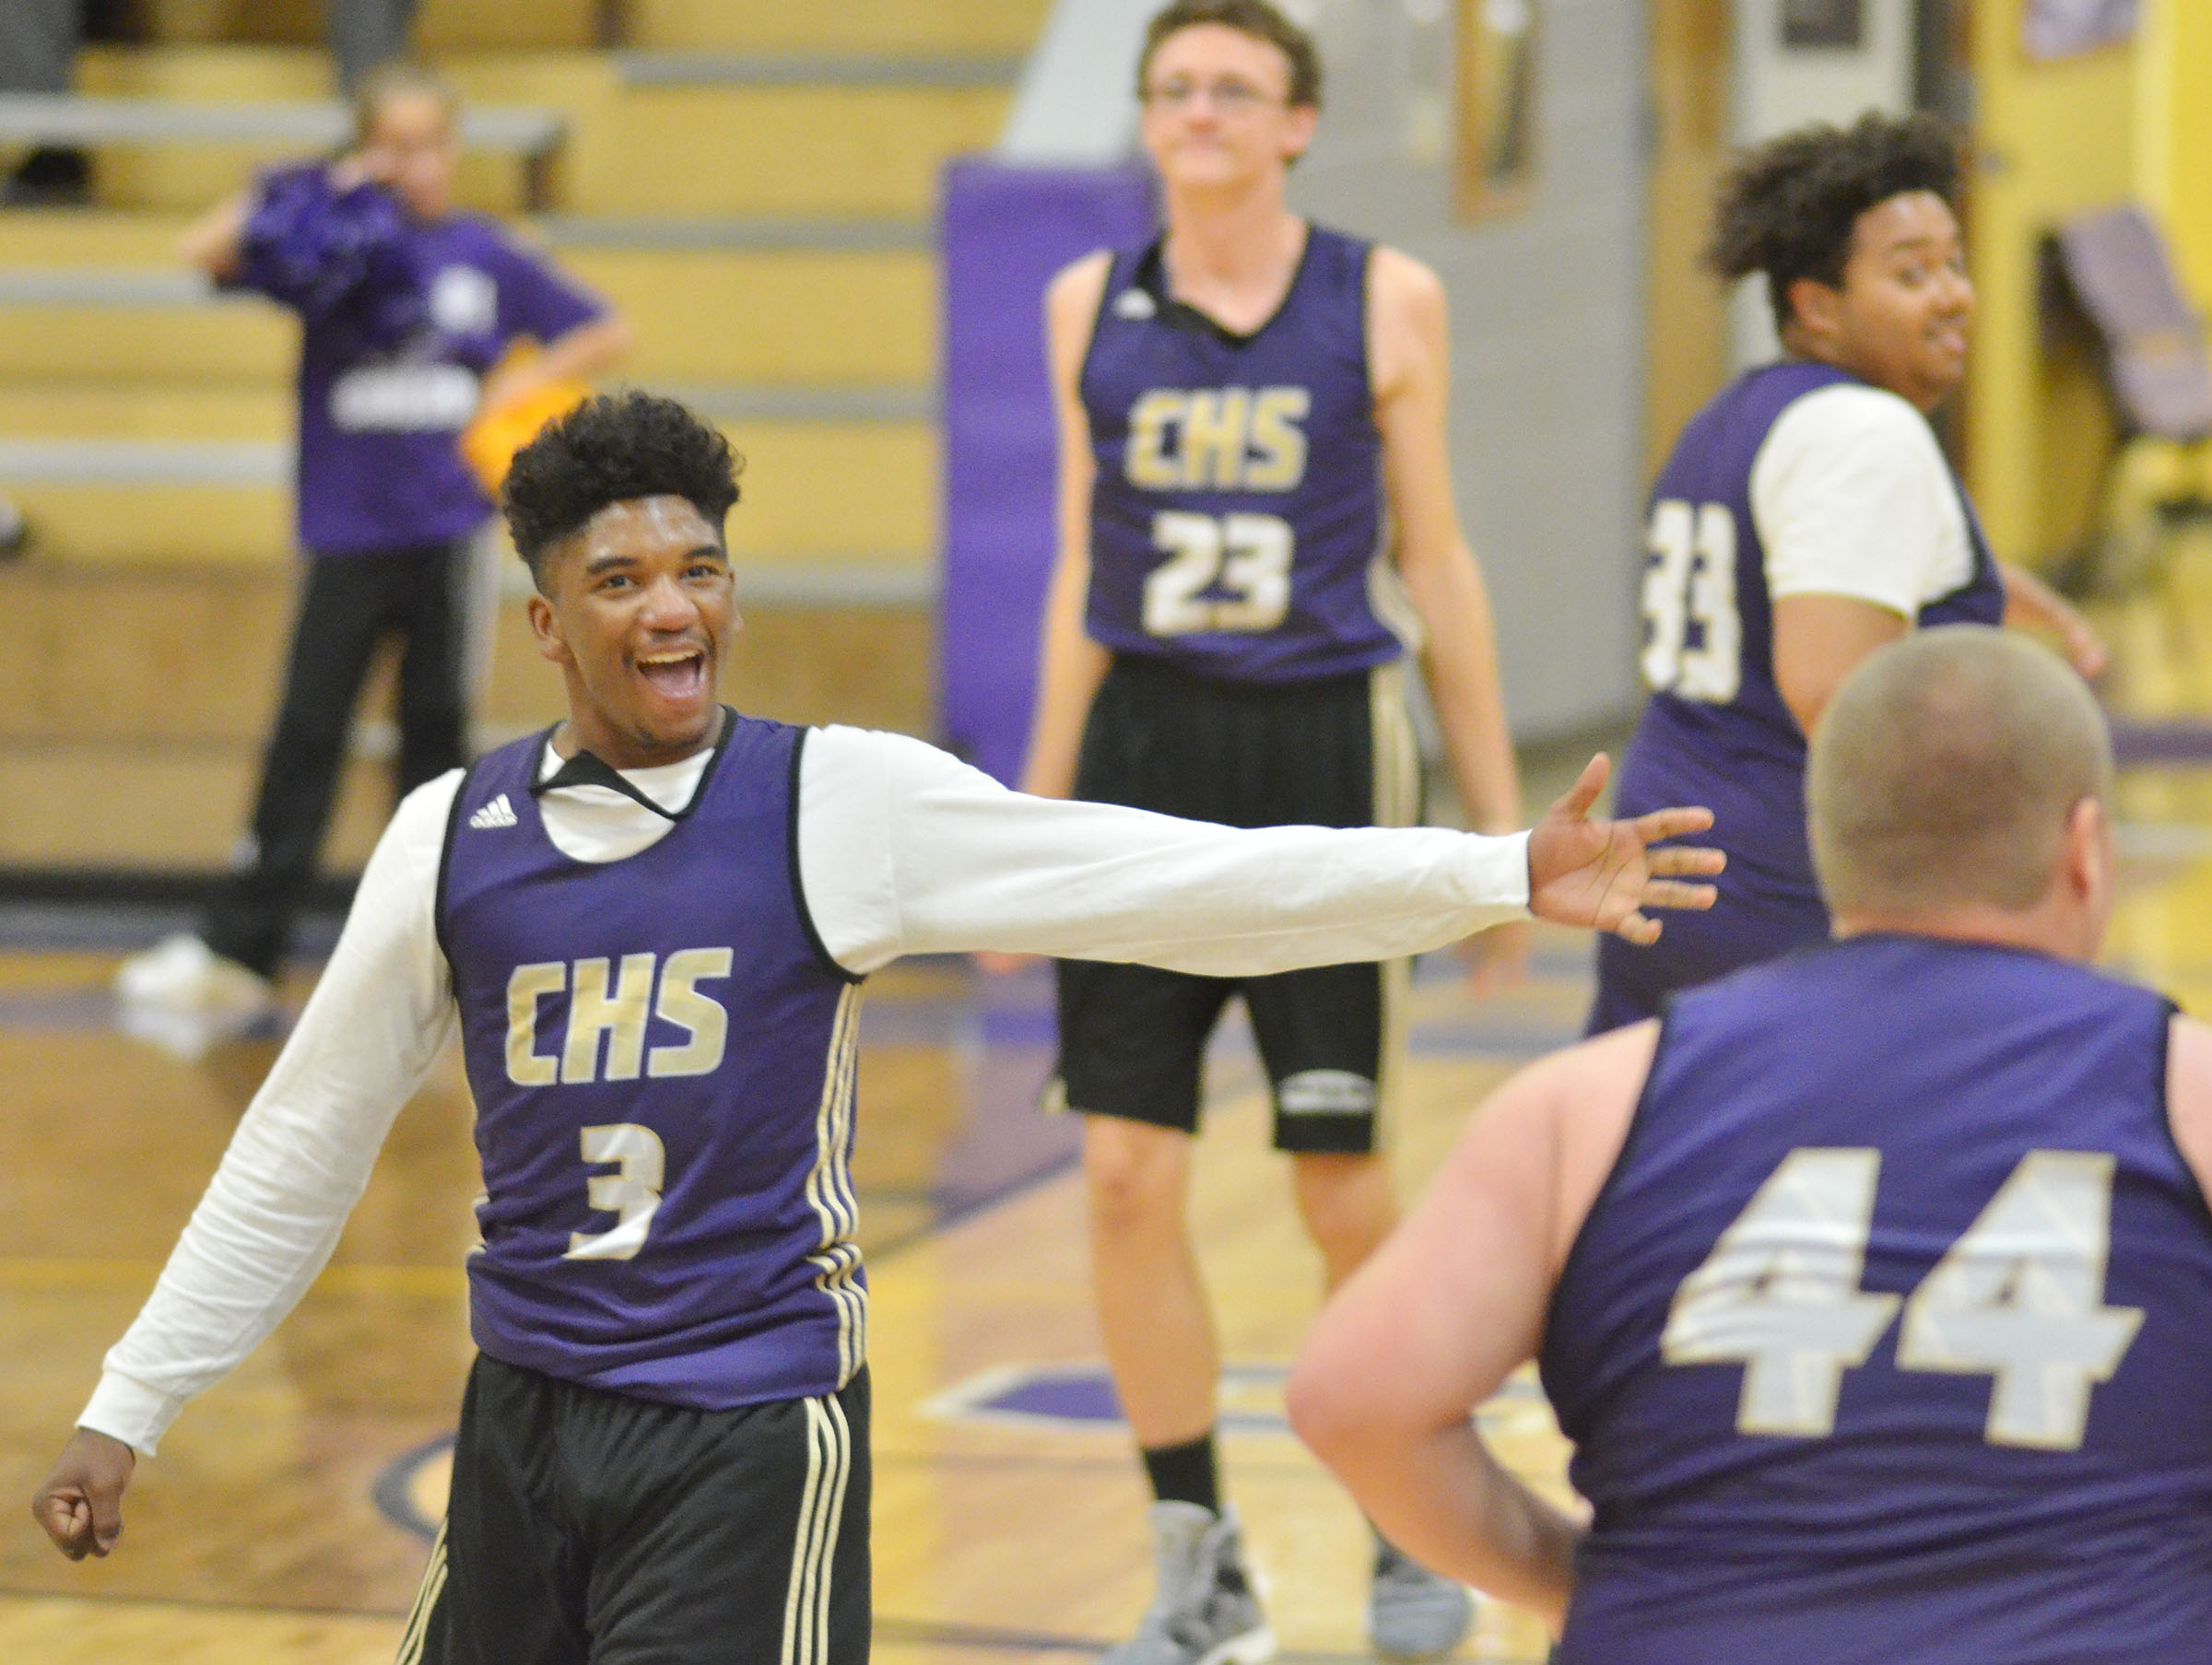 CHS junior Tyrion Taylor cheers in his team scrimmage.